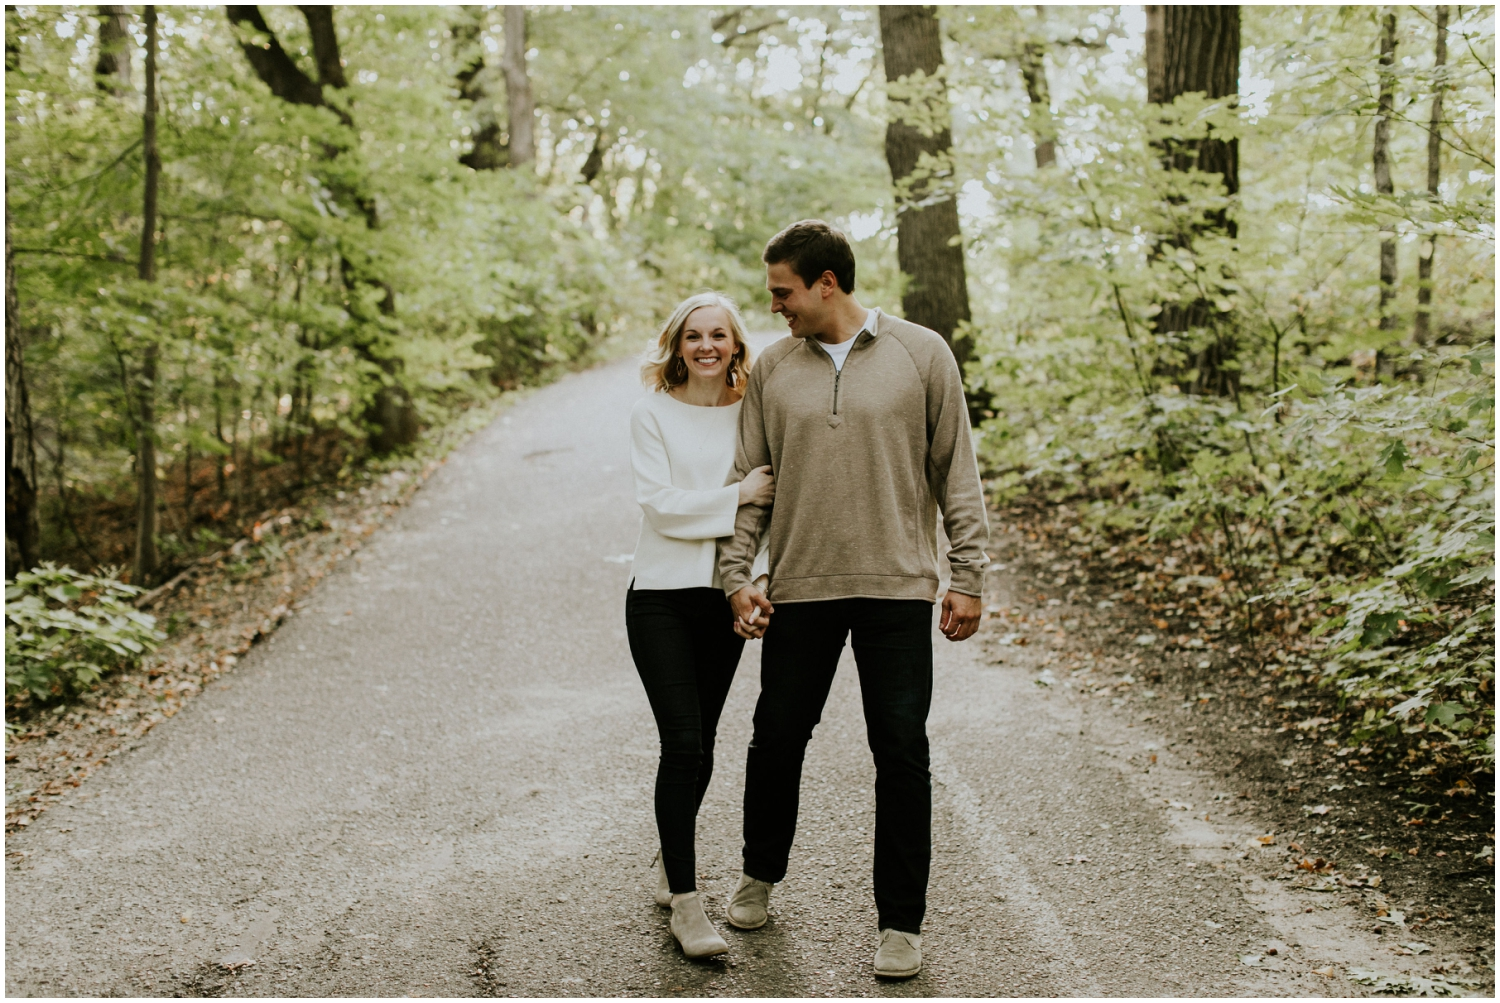 Minnesota Engagement Session- Russell Heeter Photography_0799.jpg